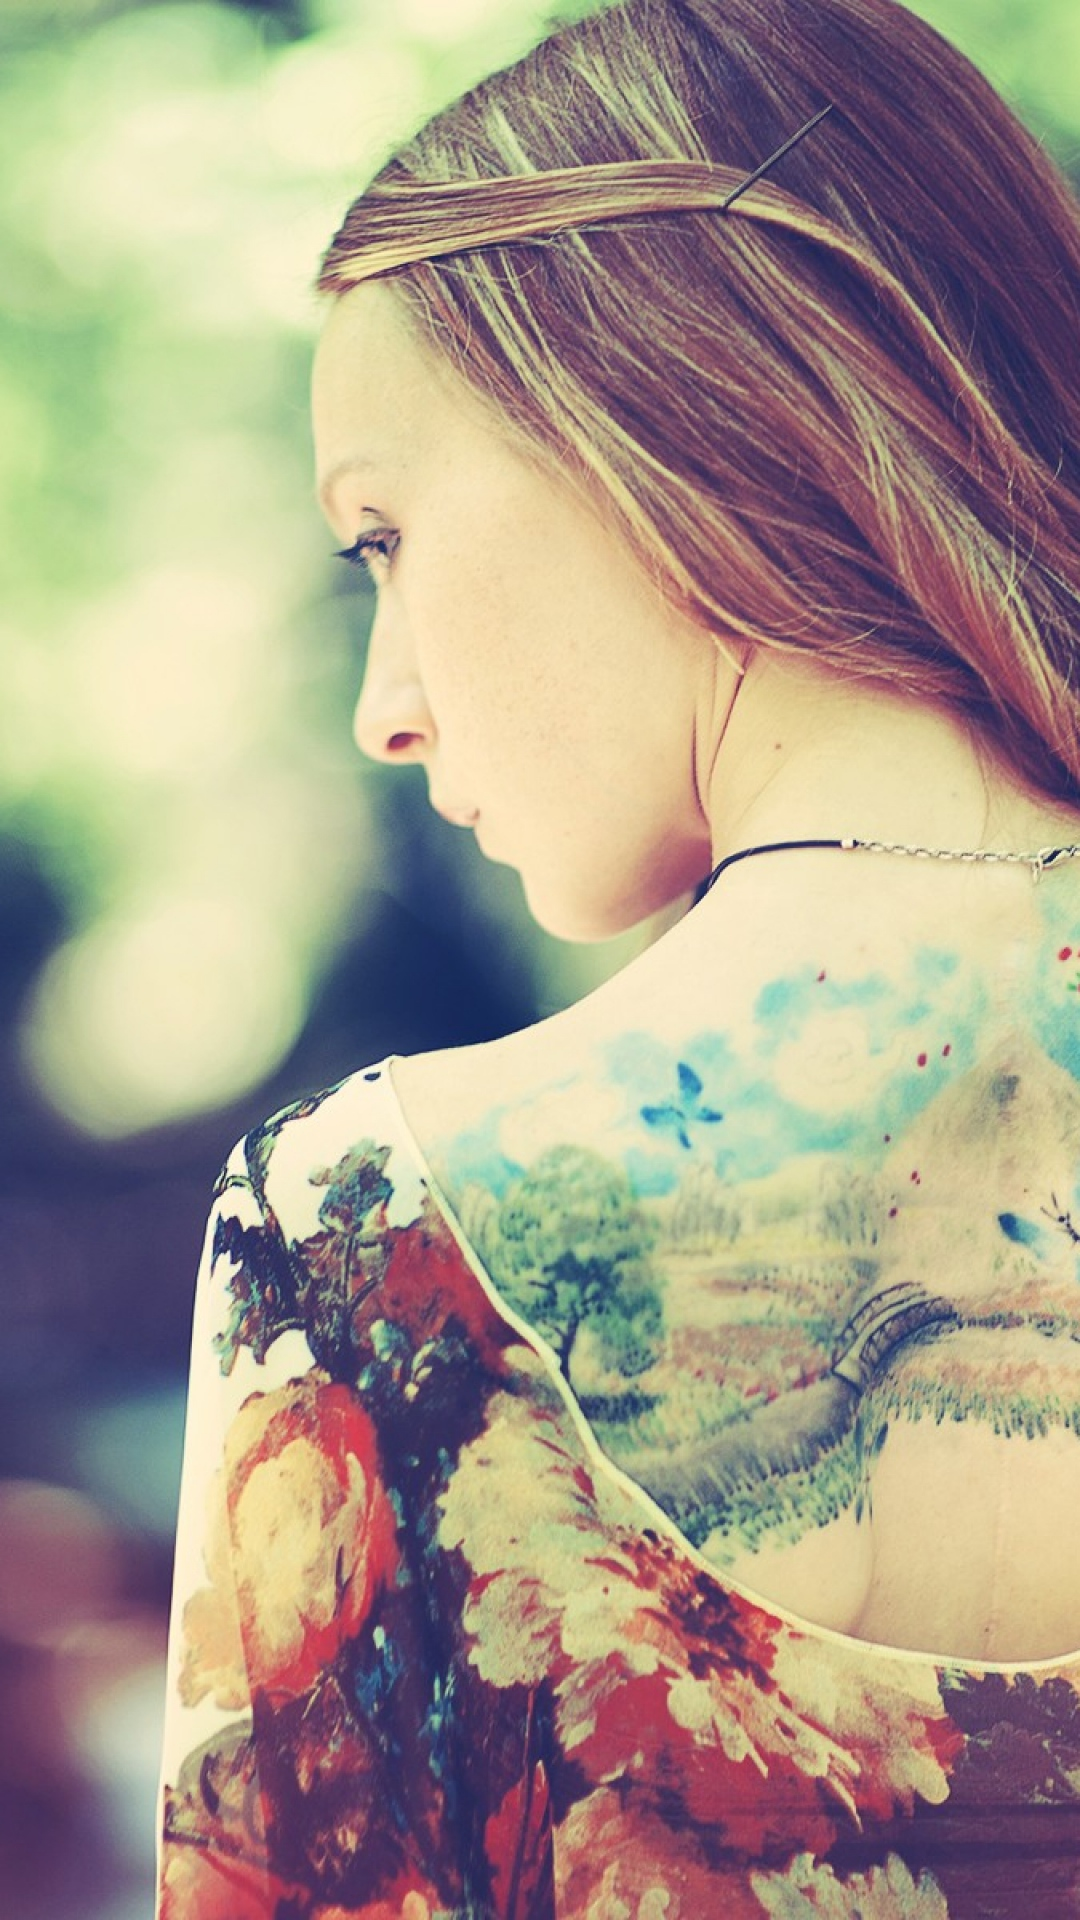 1080x1920-girl-back-dress-tattoos-nature-background-style-fashion-wallpaper-wpc900495